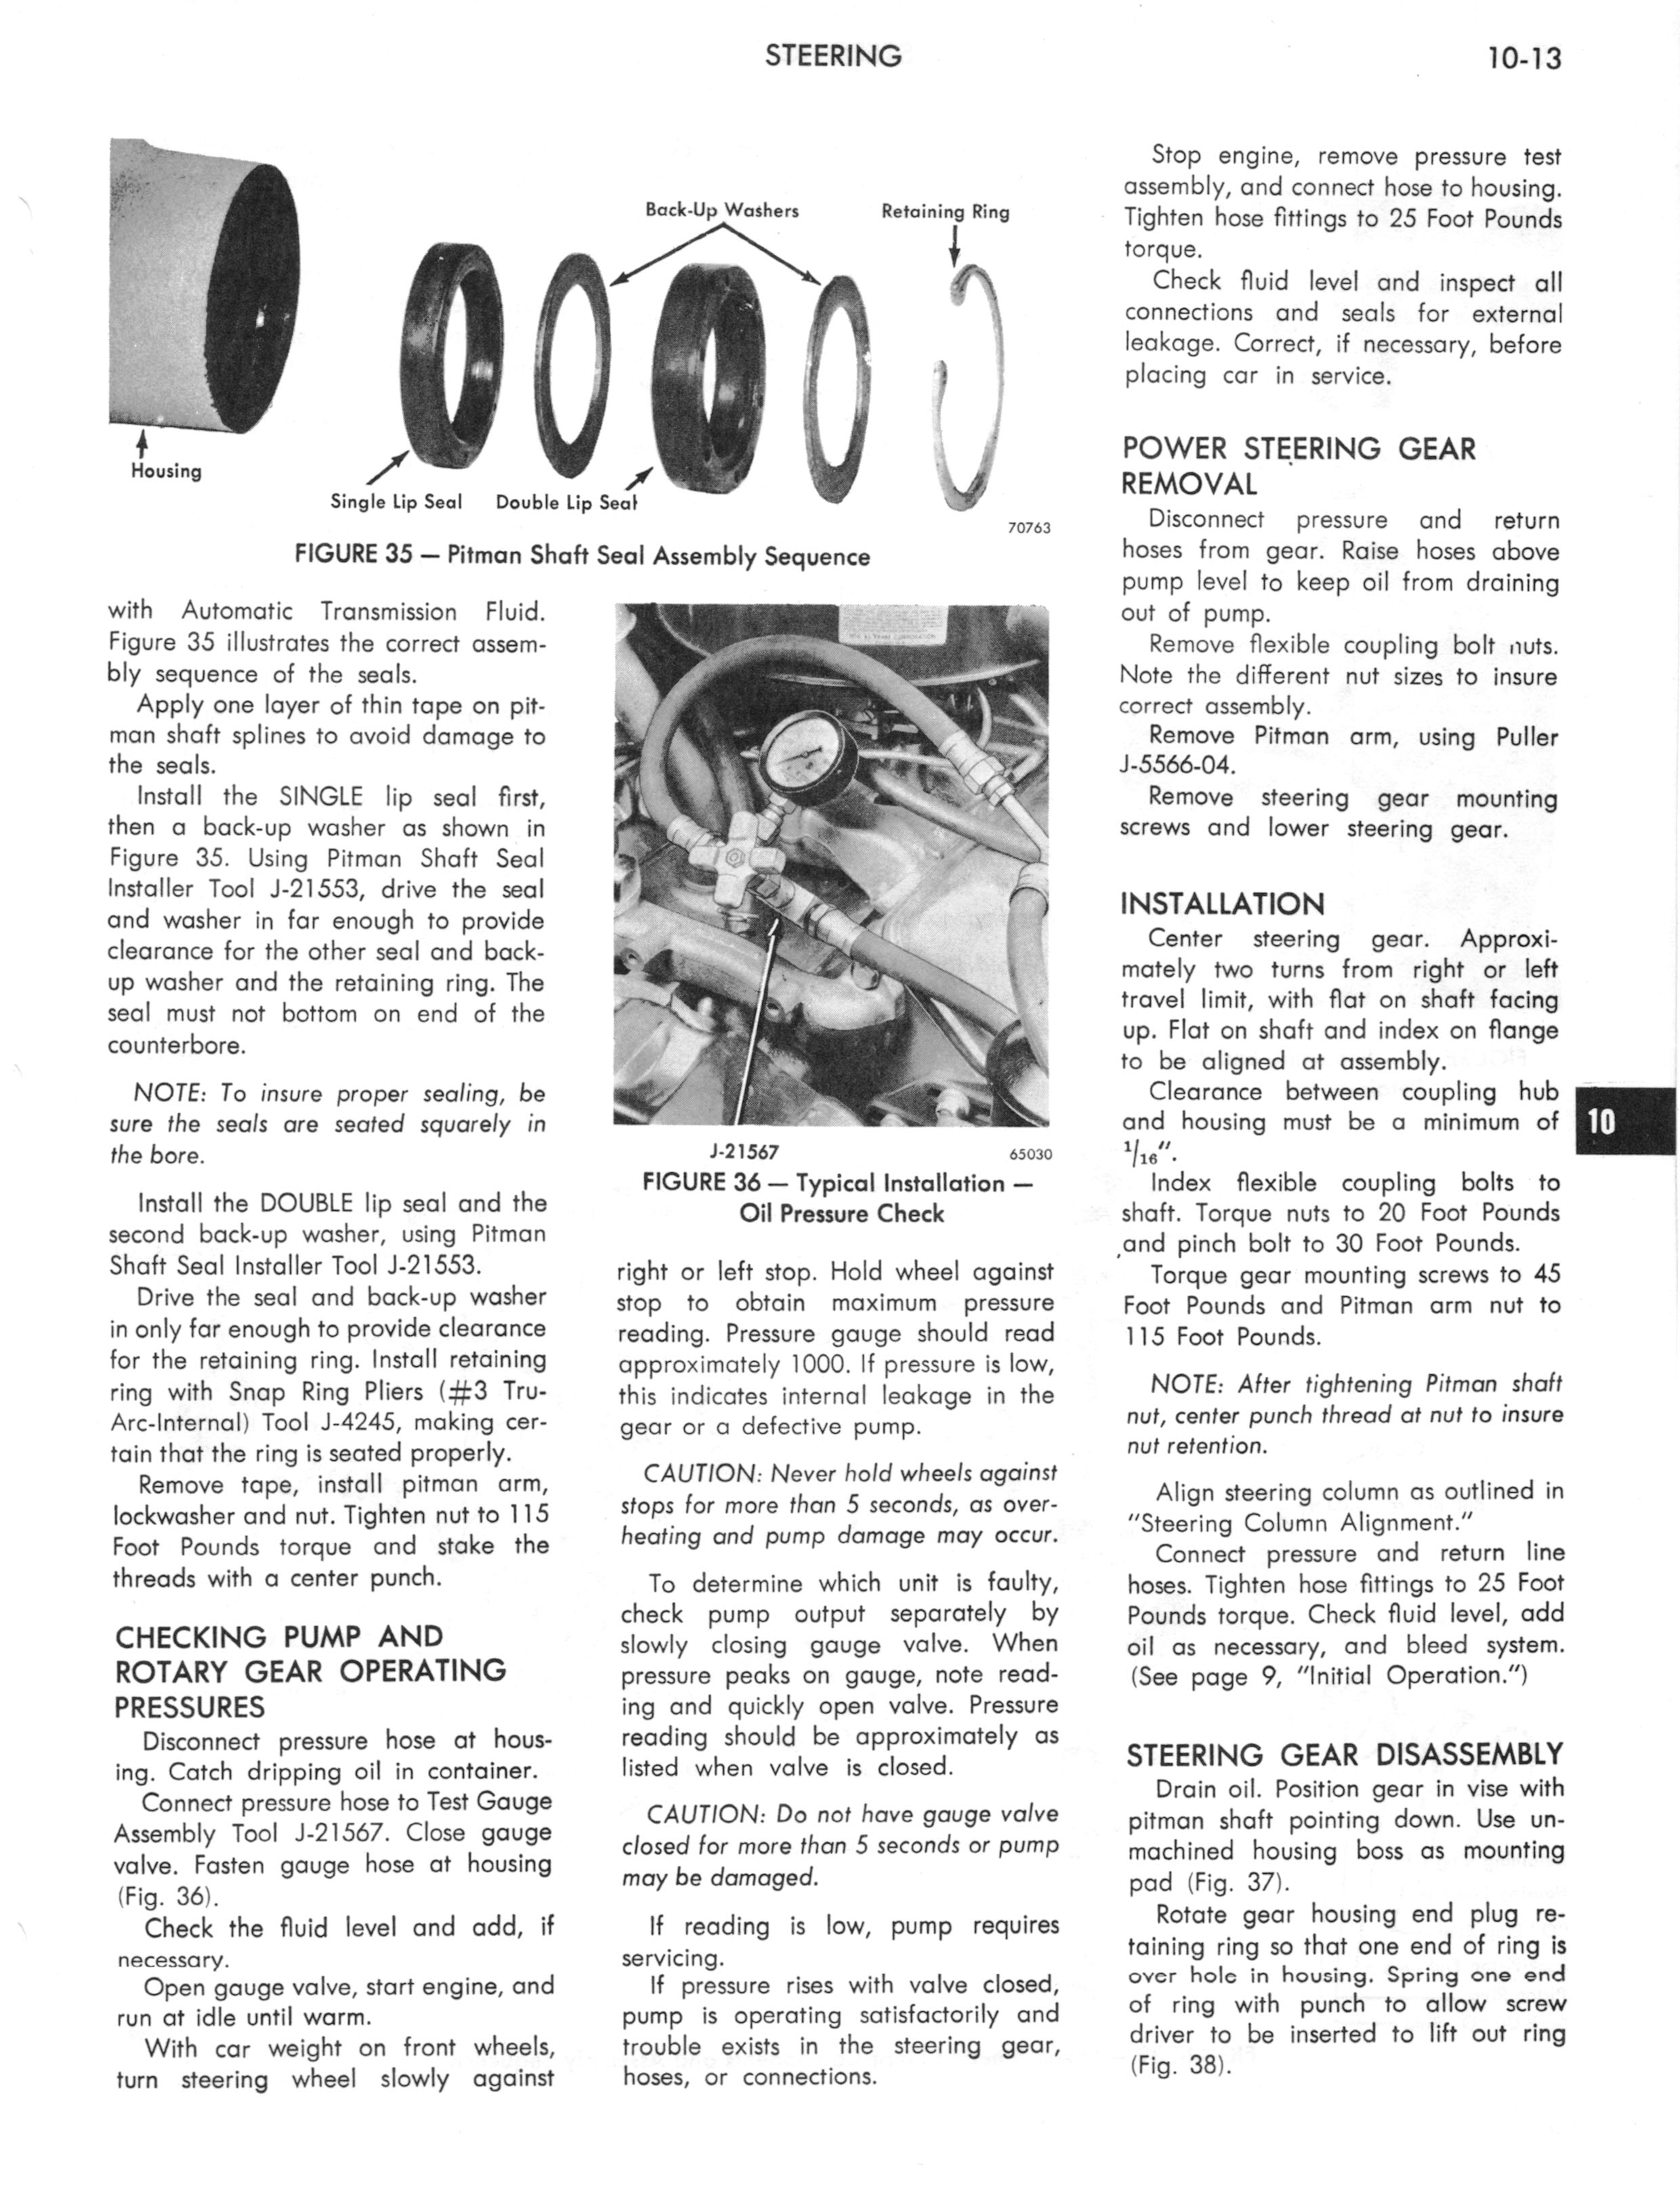 1973 AMC Technical Service Manual page 309 of 487